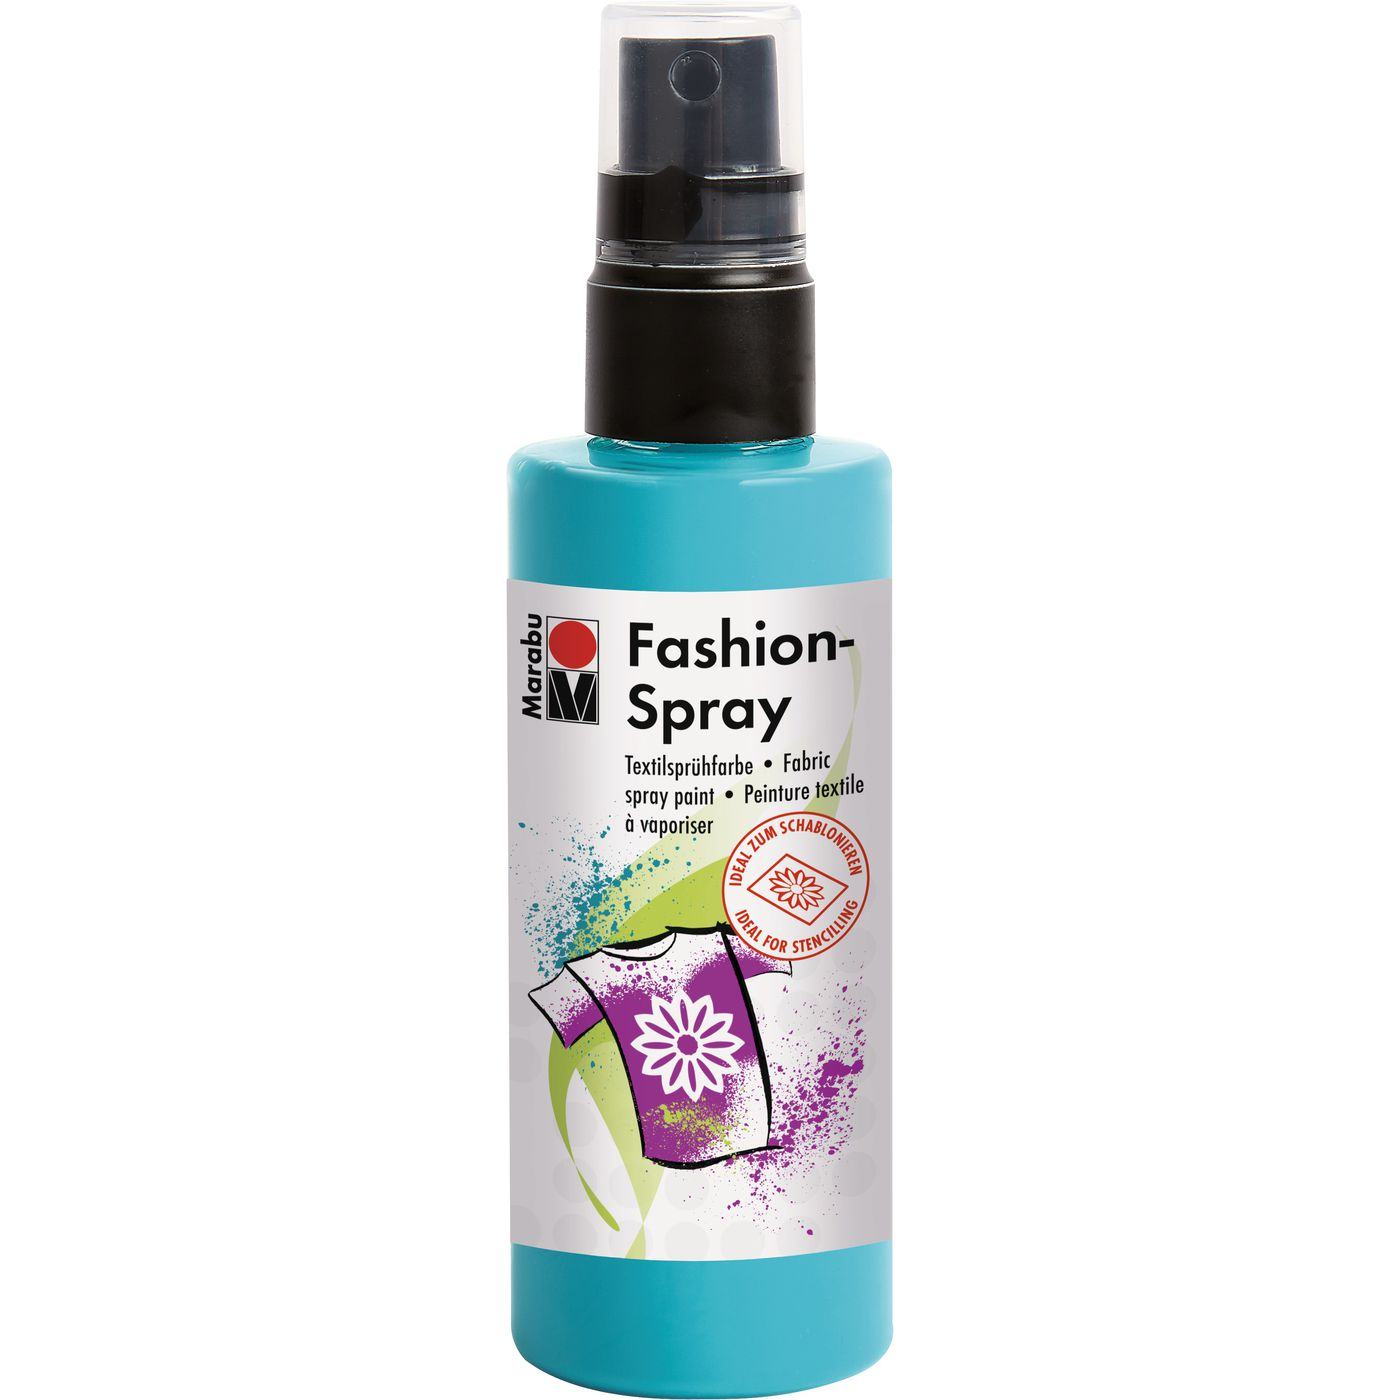 Fashion-Spray, 100 мл